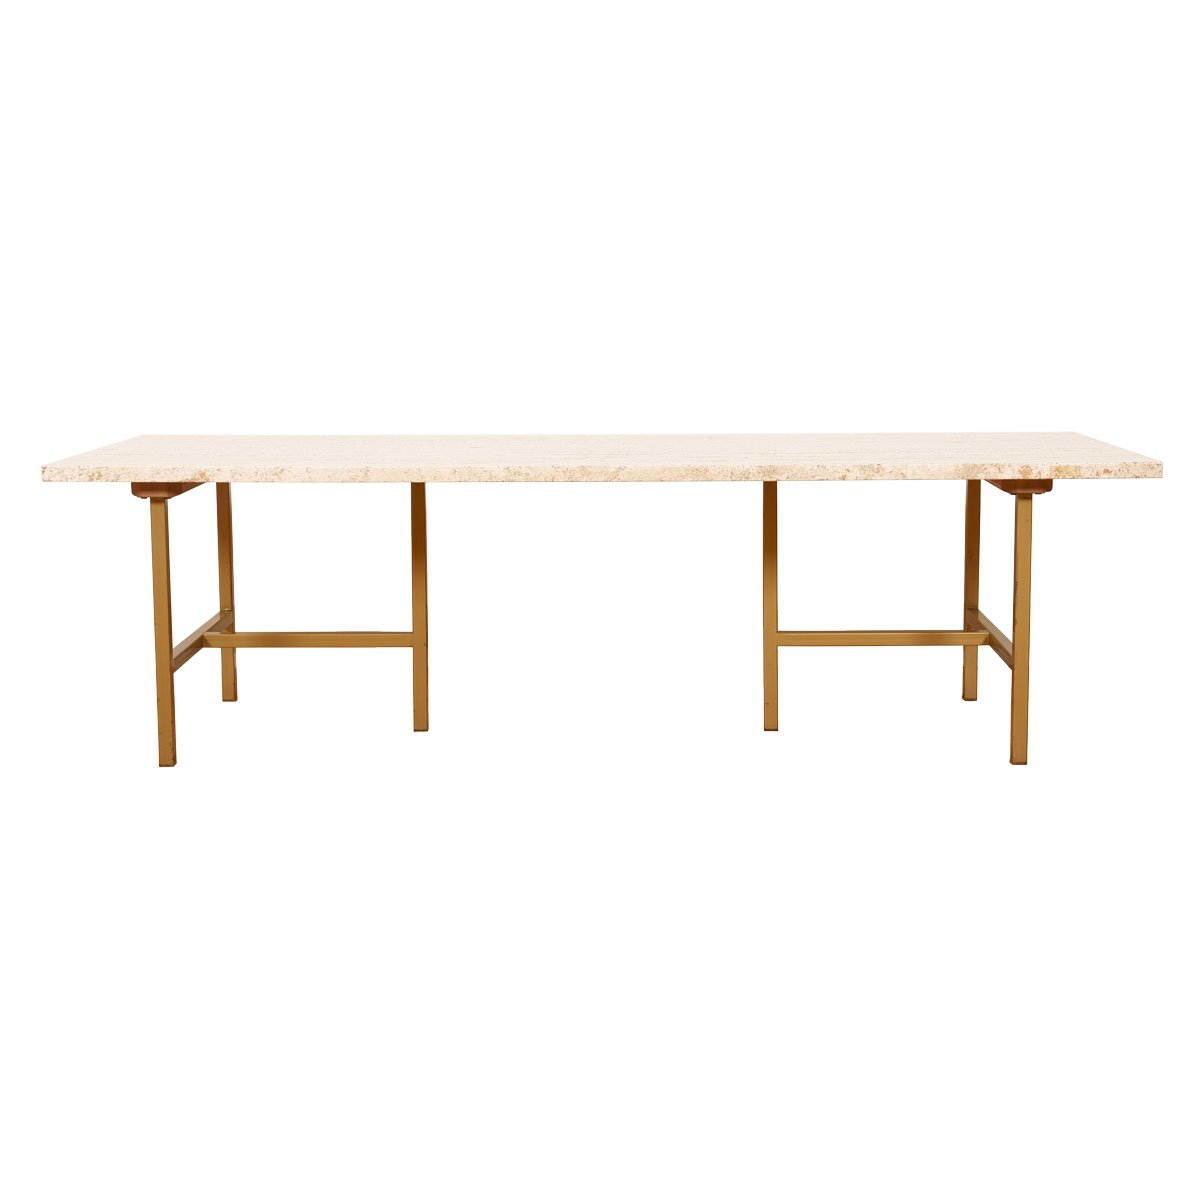 American Modernist Brass & Travertine Coffee Table.